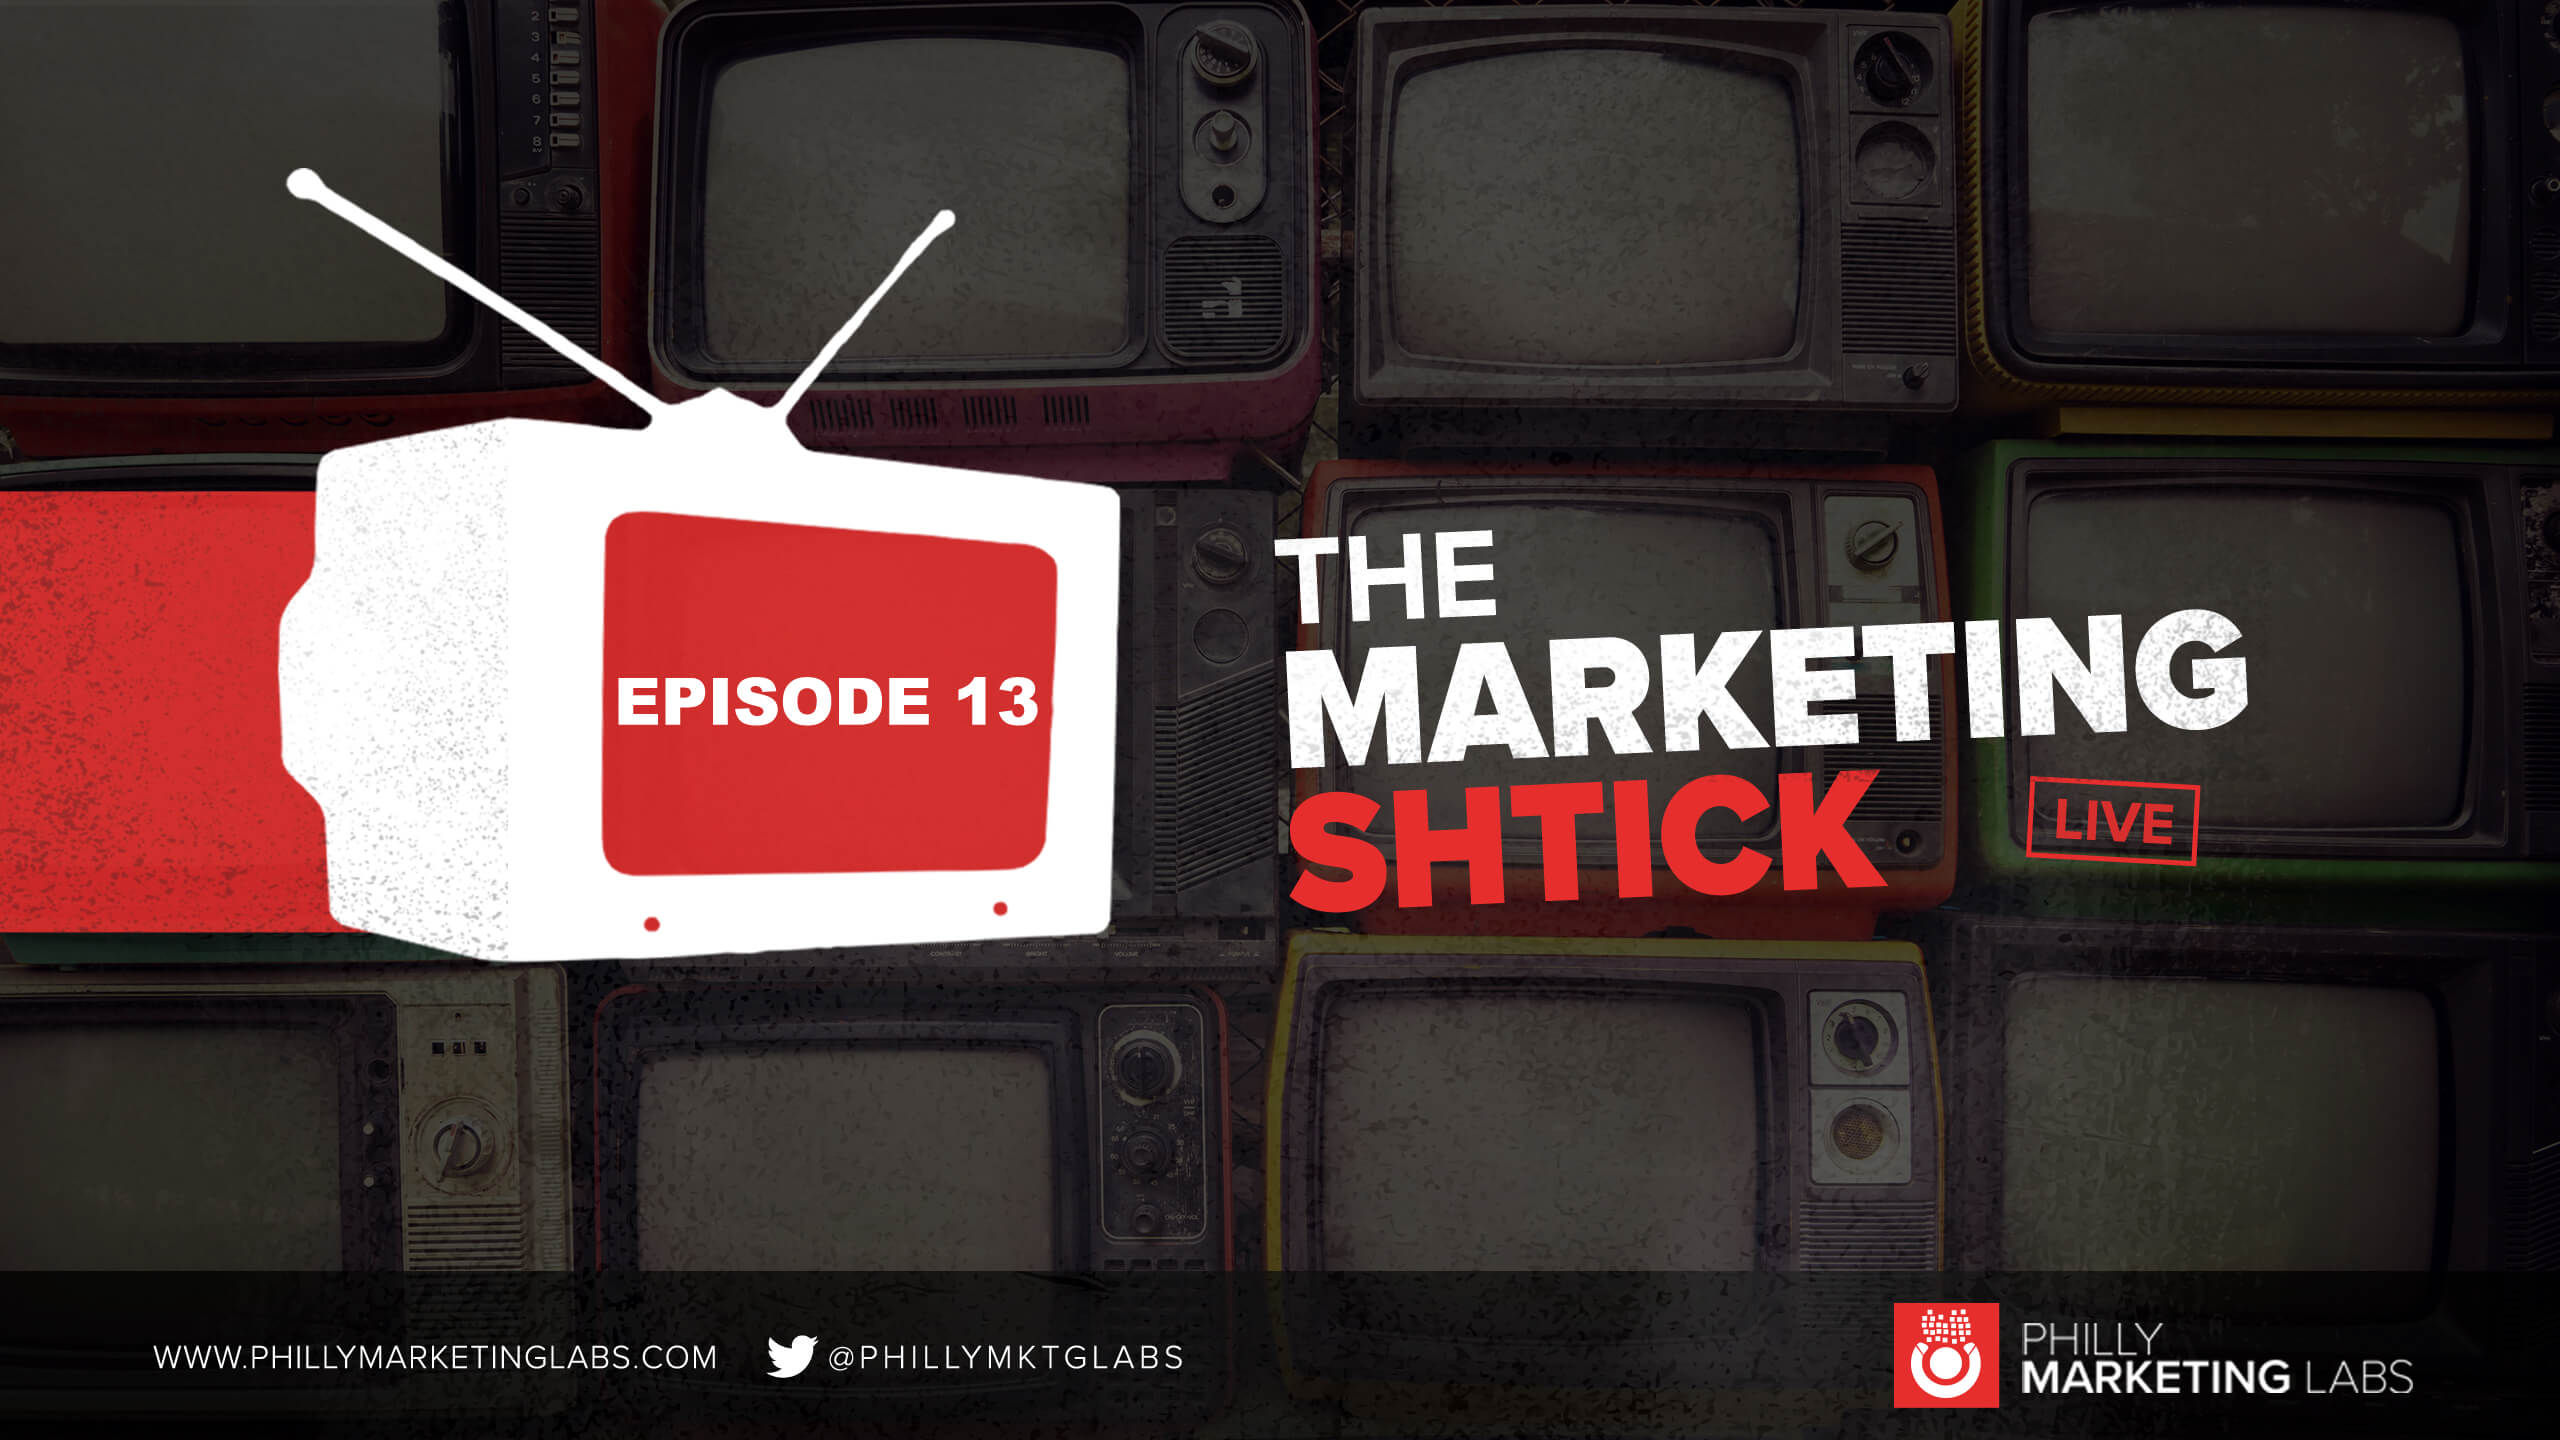 Marketing Shtick Episode 13